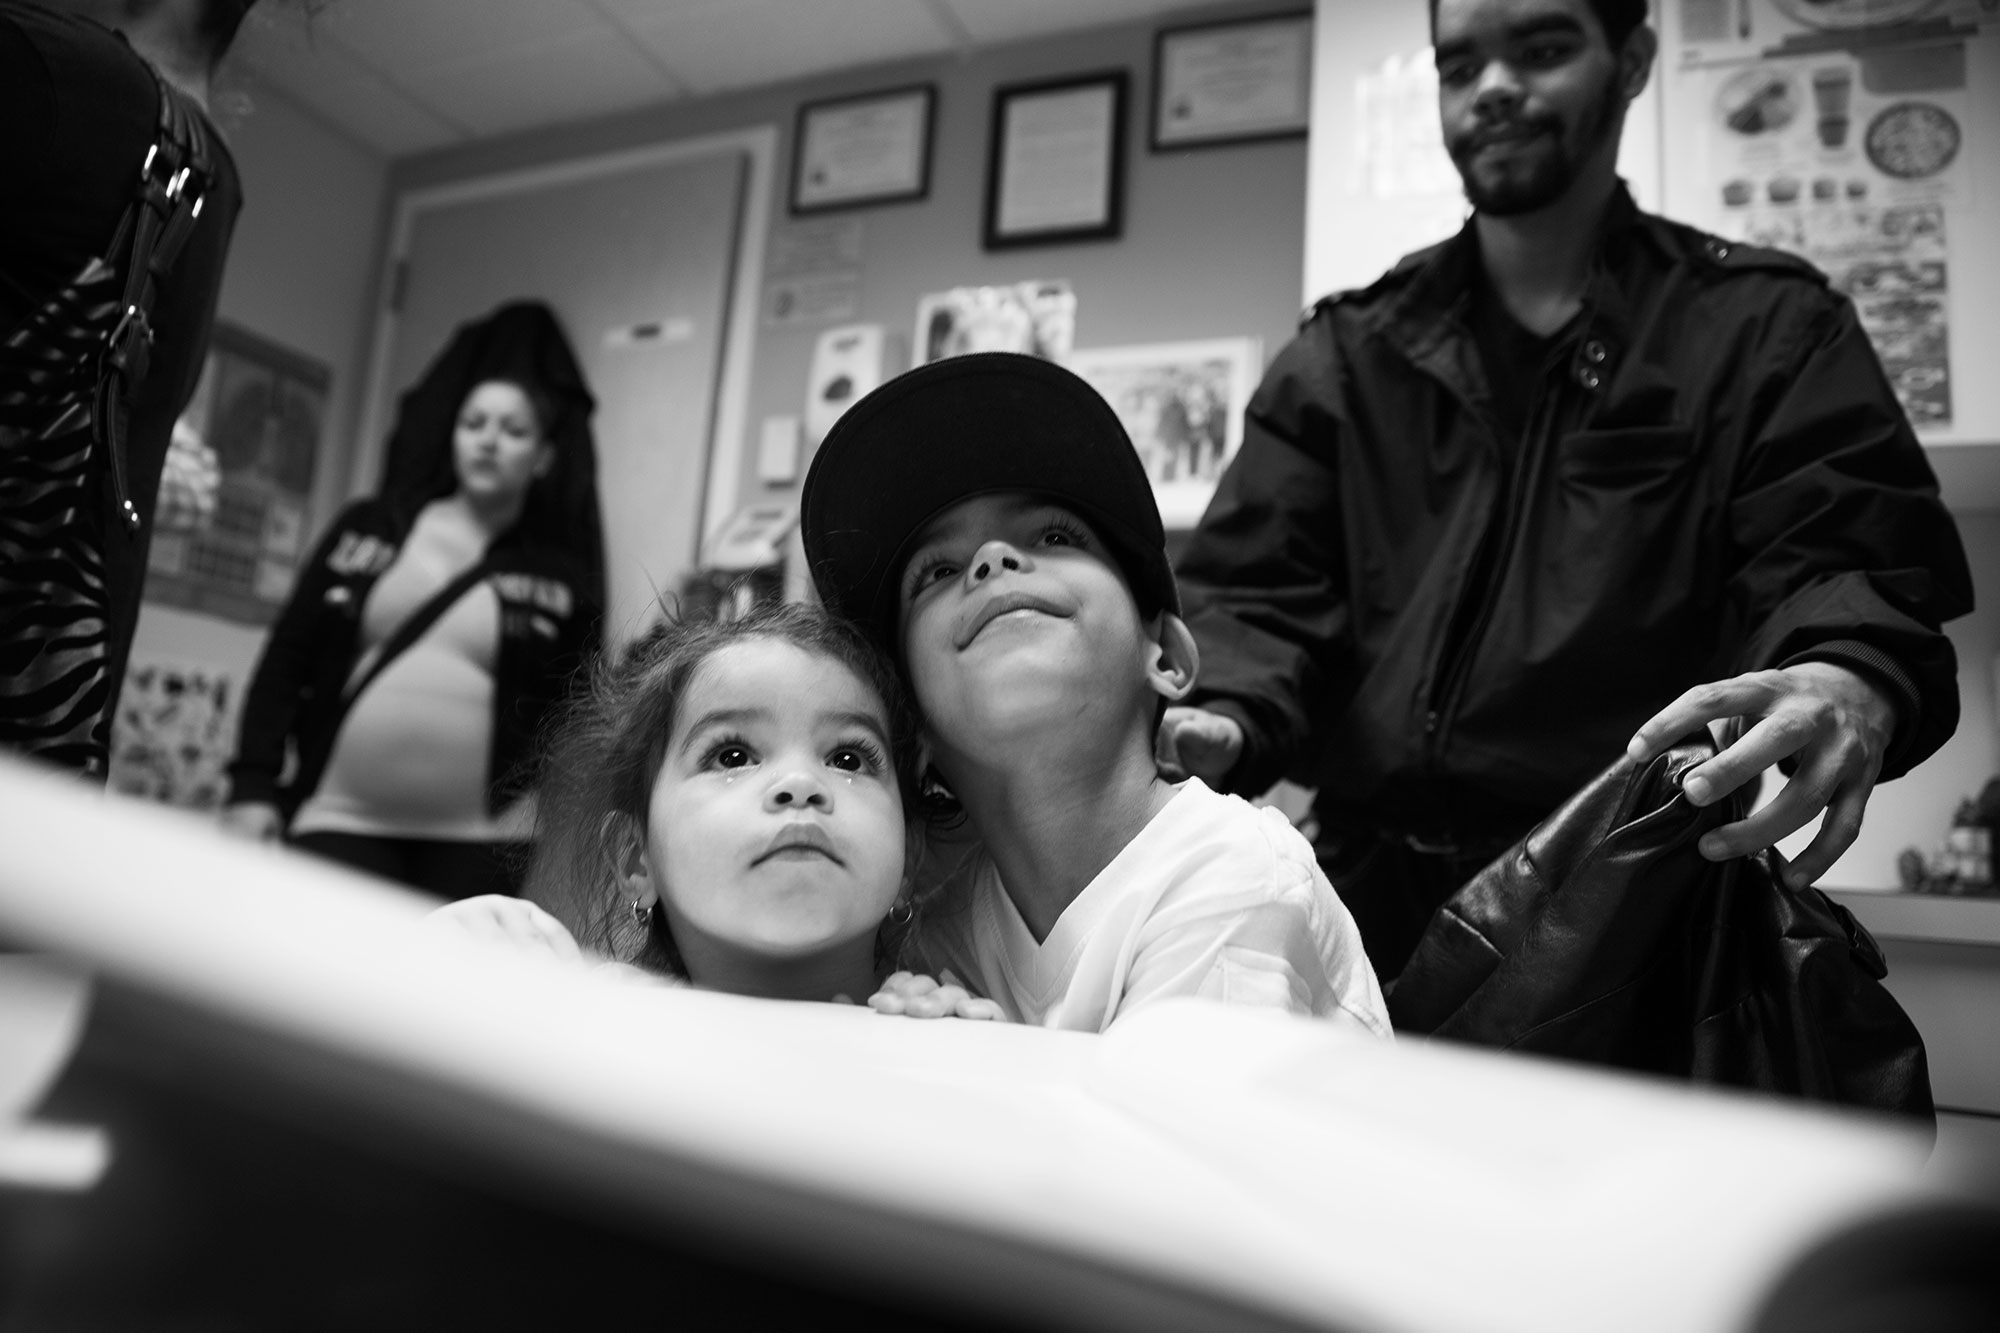 5 year old Asthma patient Kelvin Torres and his two year old sister, Janalisse.